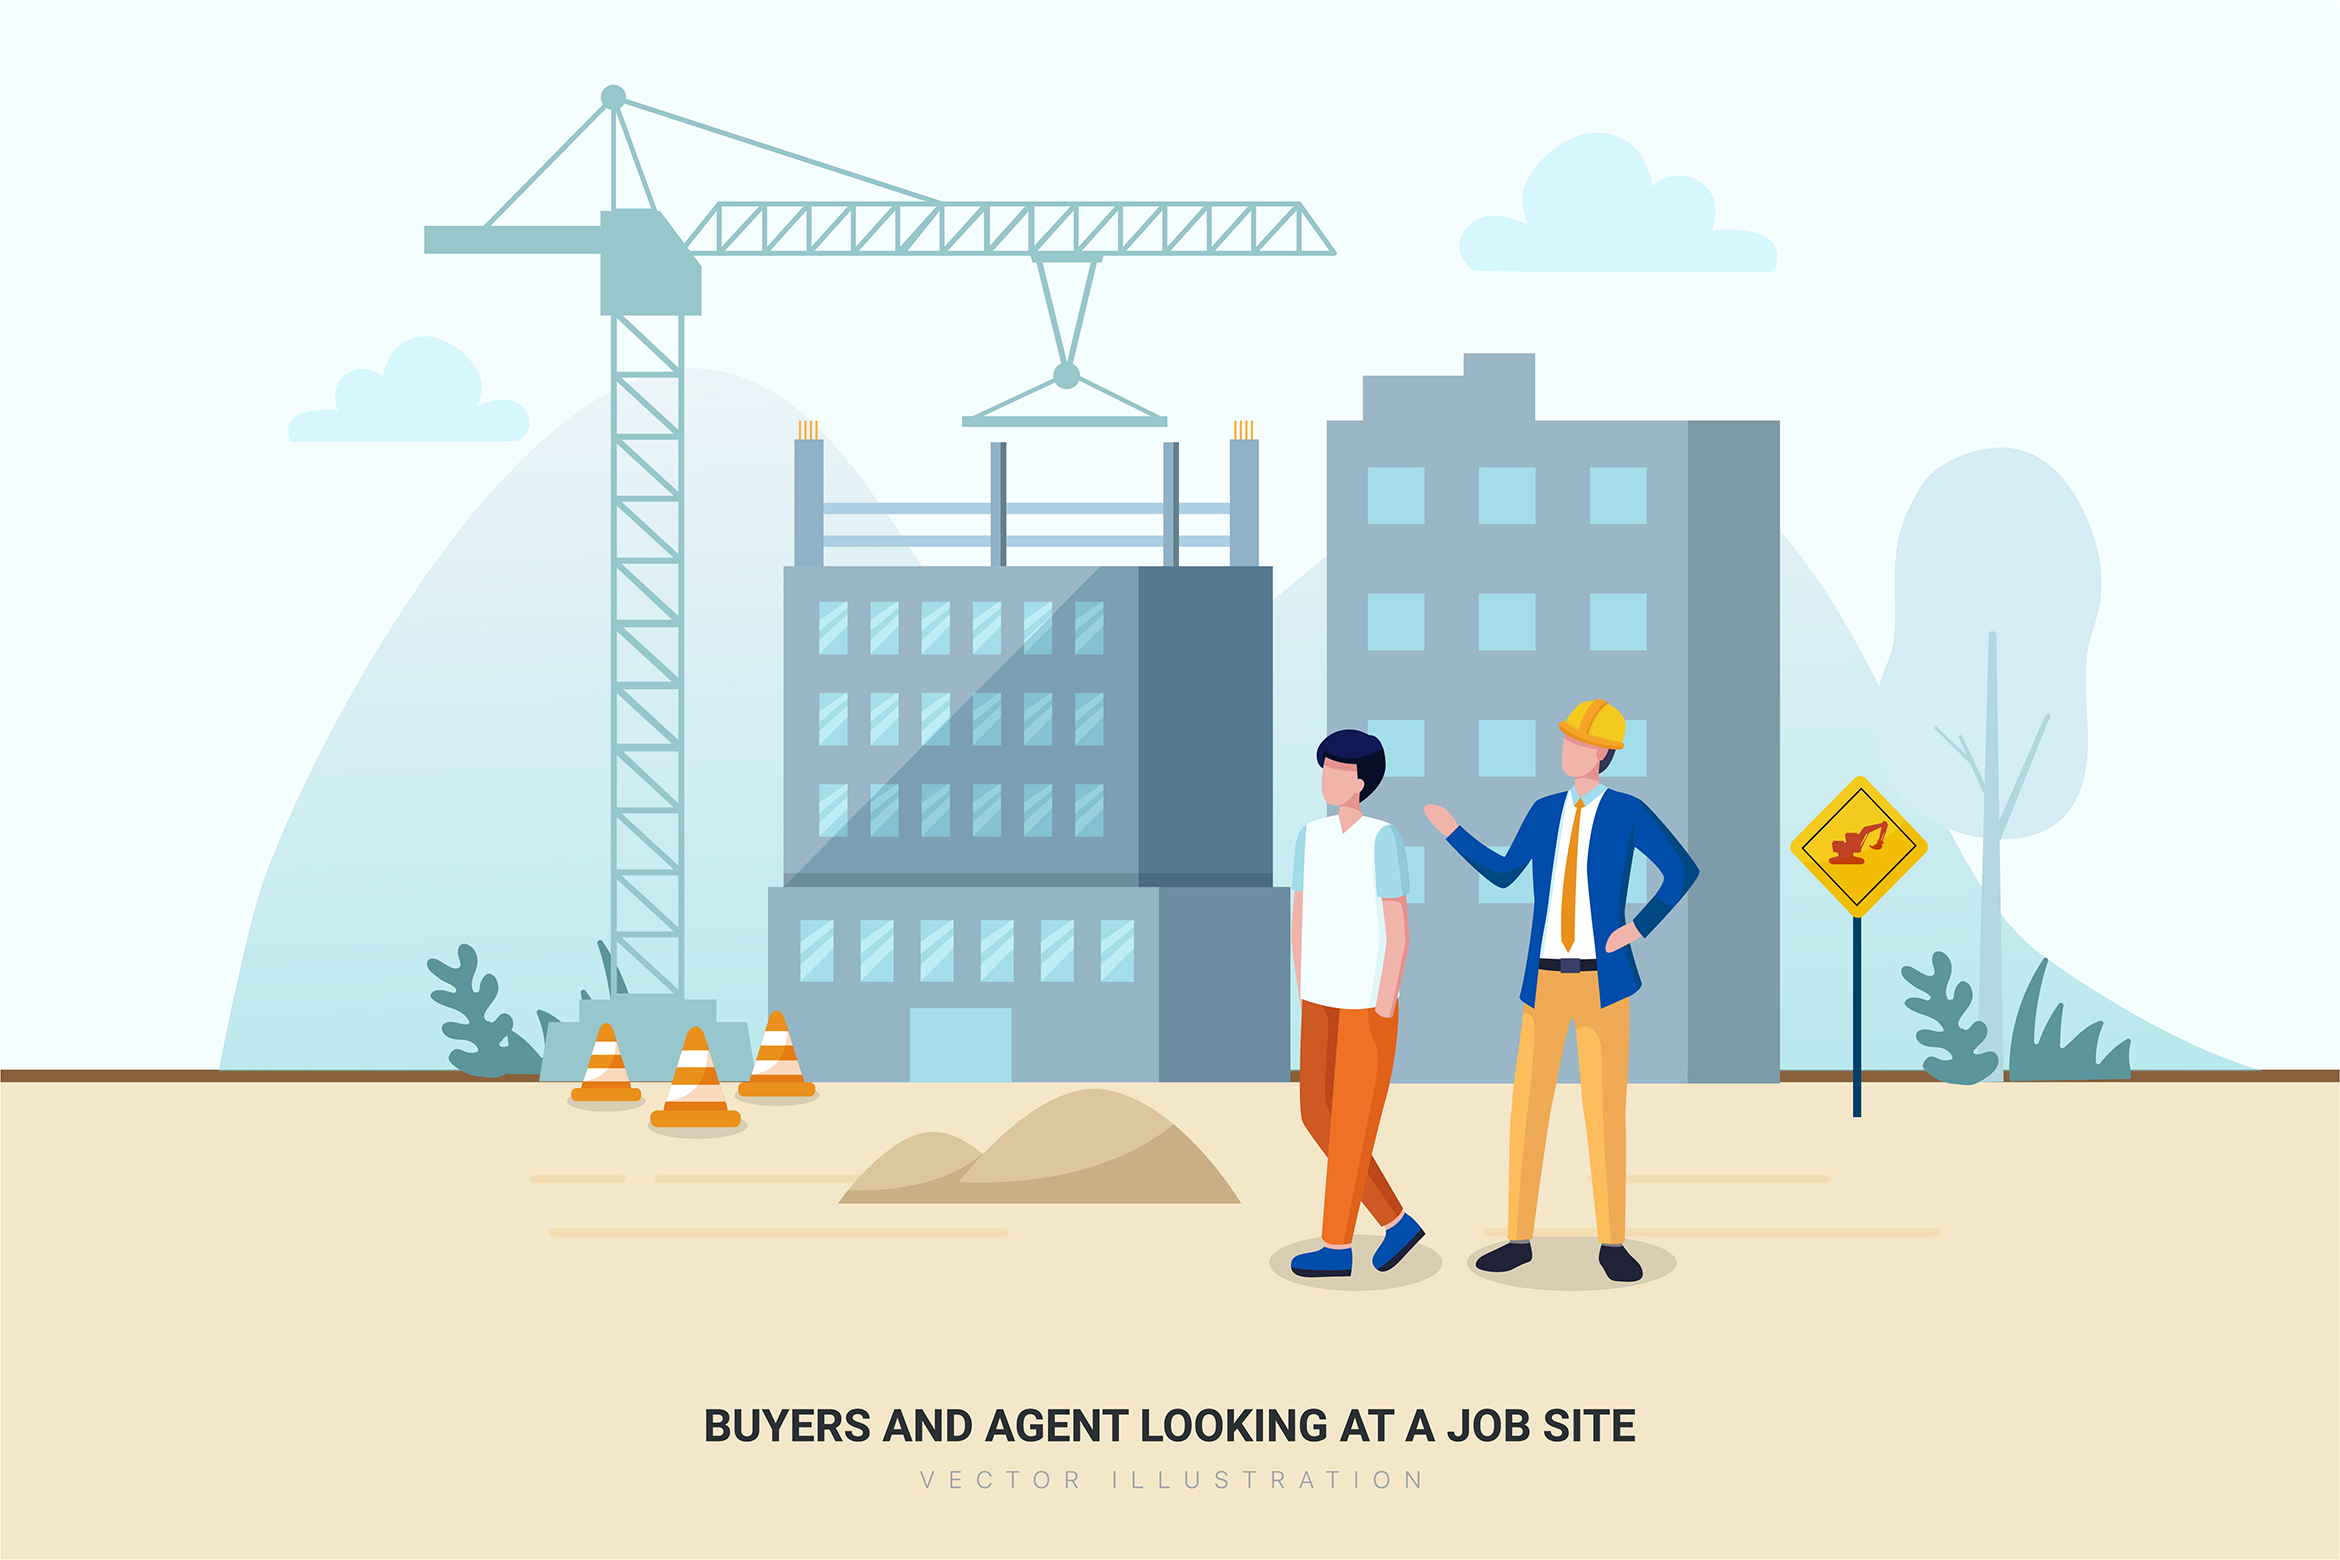 Construction & Real Estate Vector Illustration - Part 30 example image 6